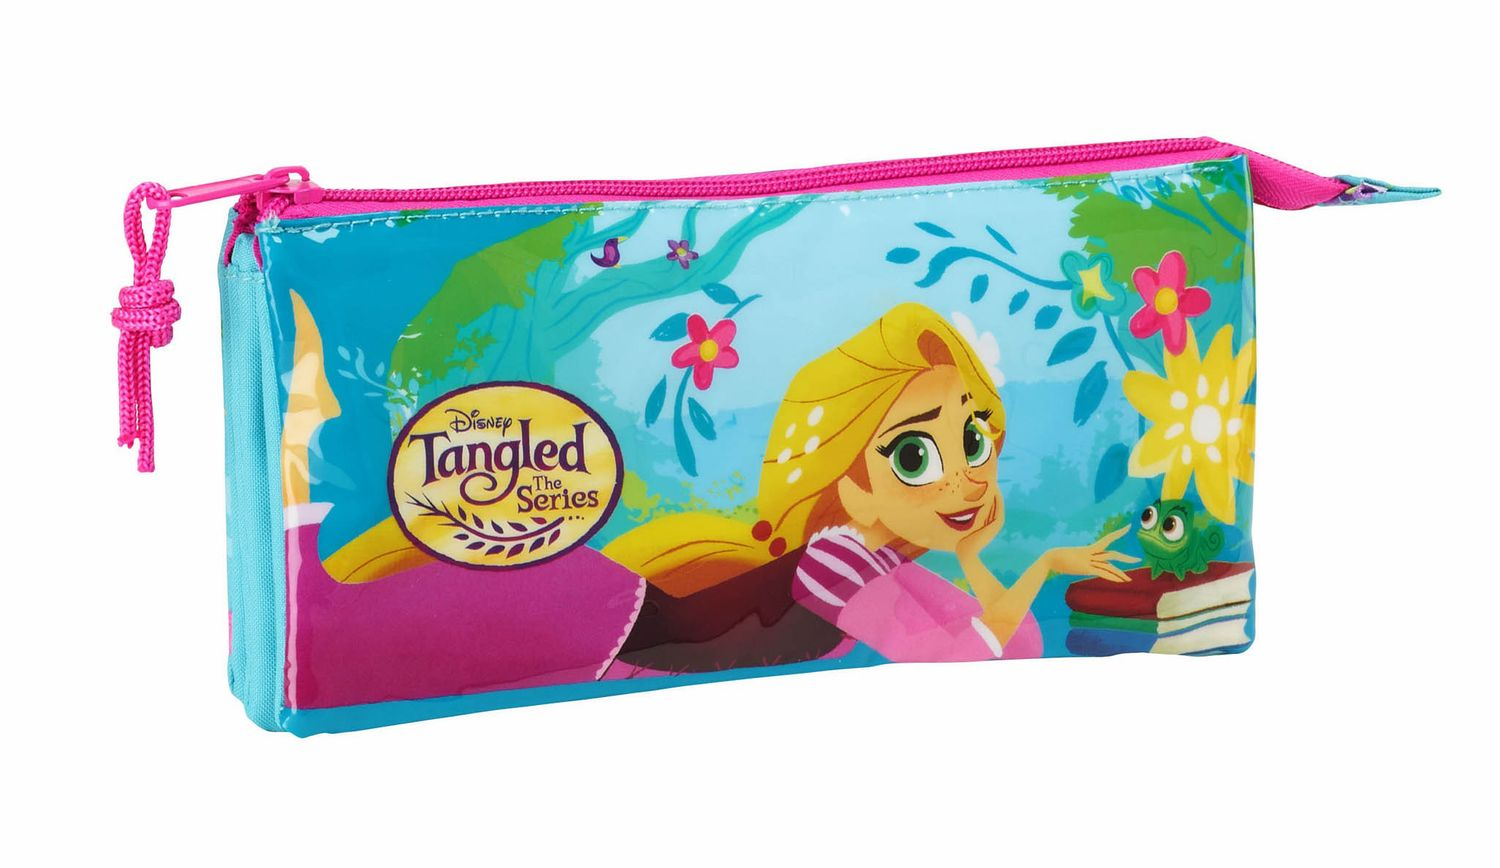 Disney Tangled Triple Pencil Case